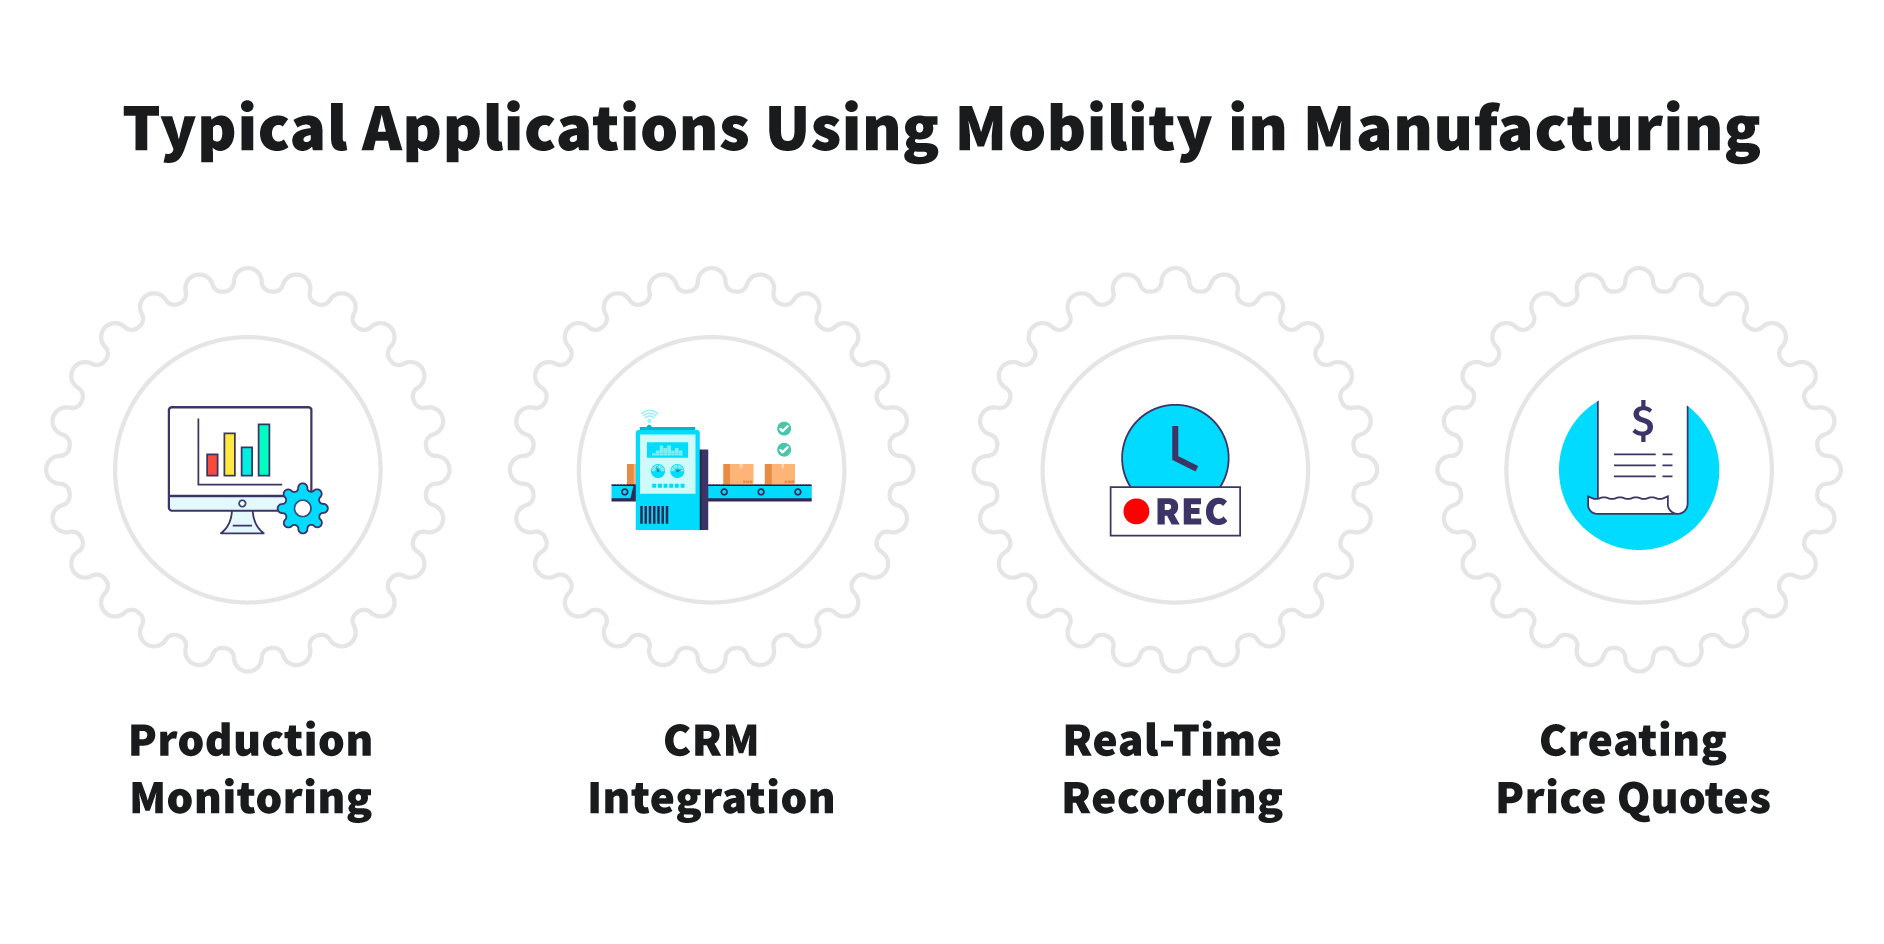 apps using mobility in manufacturing